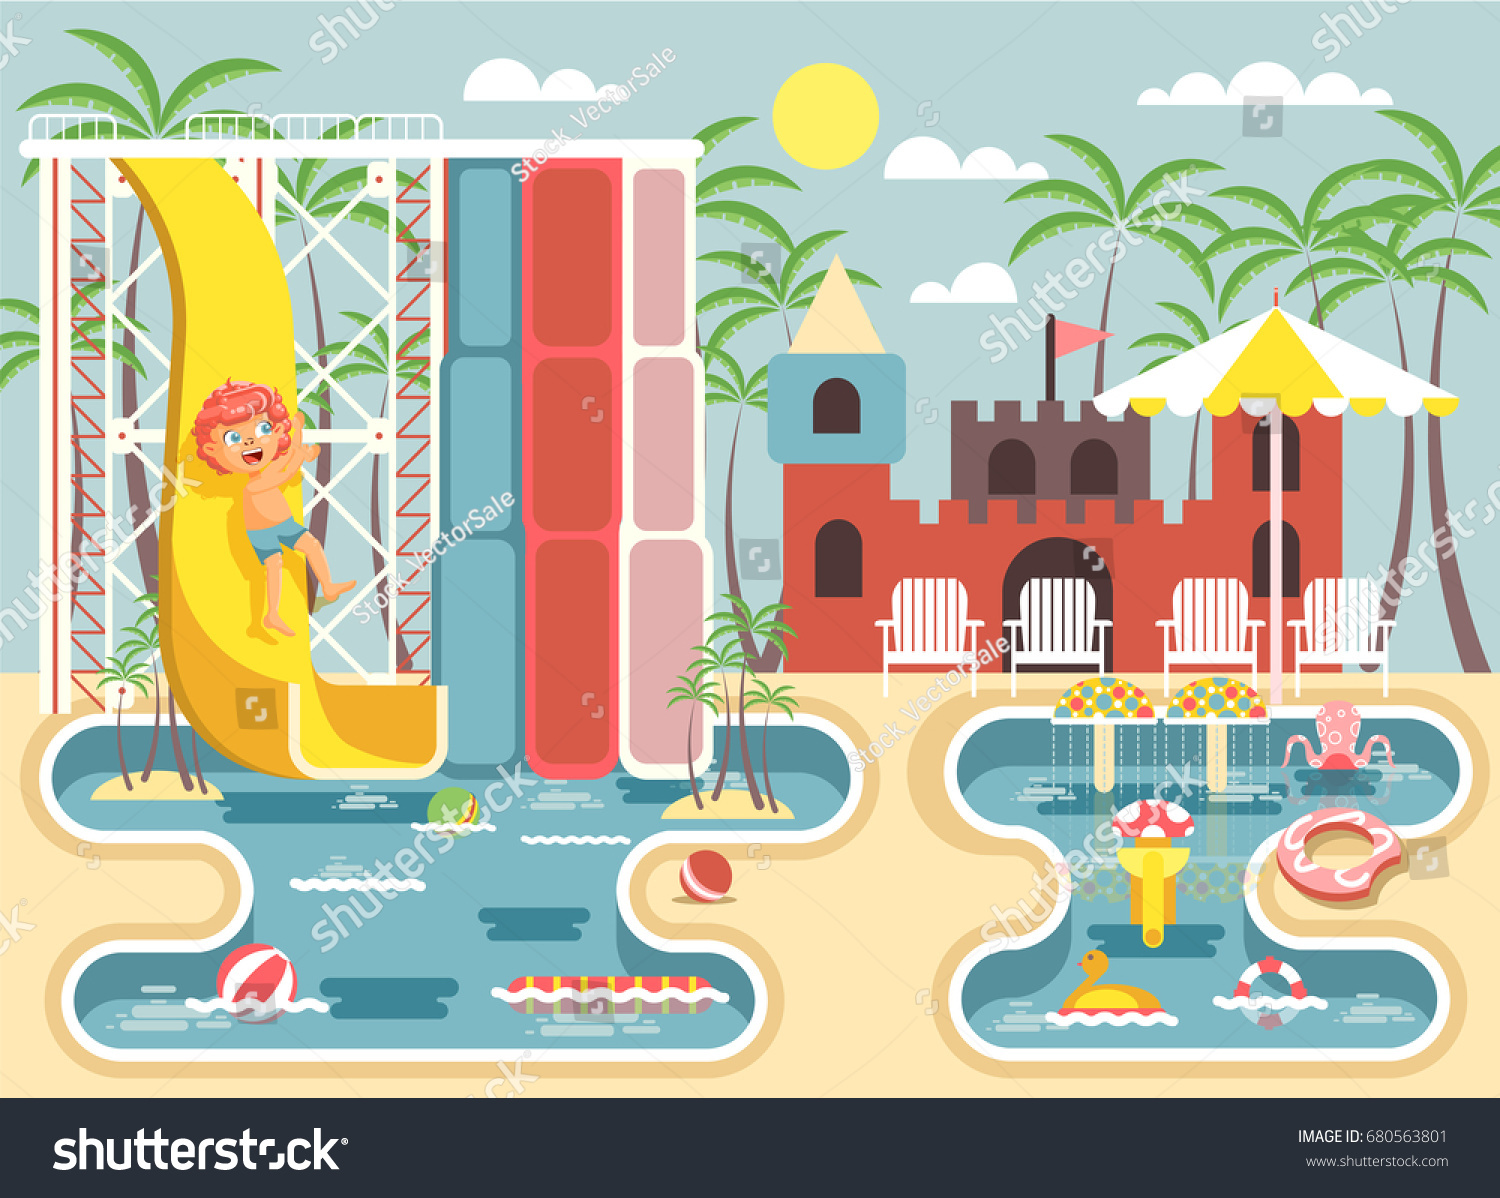 Stock vector illustration cartoon character lonely child redhead boy riding water slide falling into pool frolicking